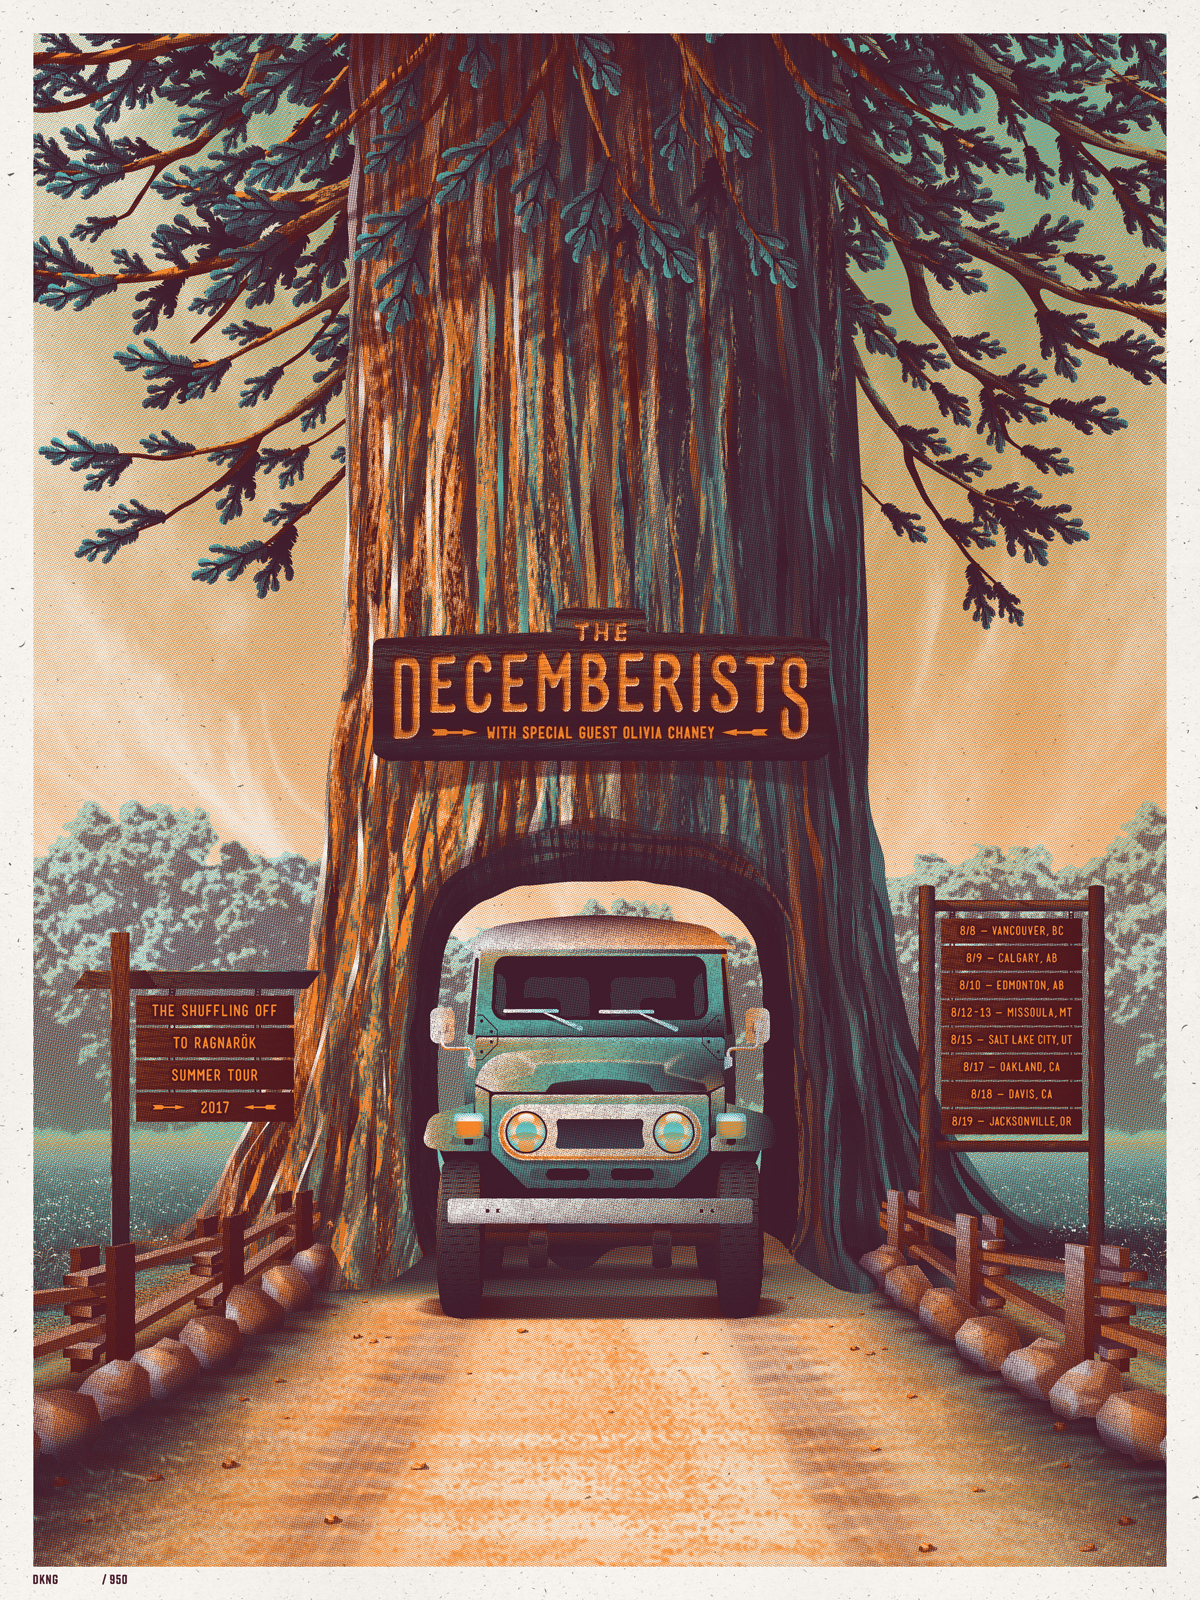 The+Decemberists+2017+Tour+Poster+by+DKNG.jpg